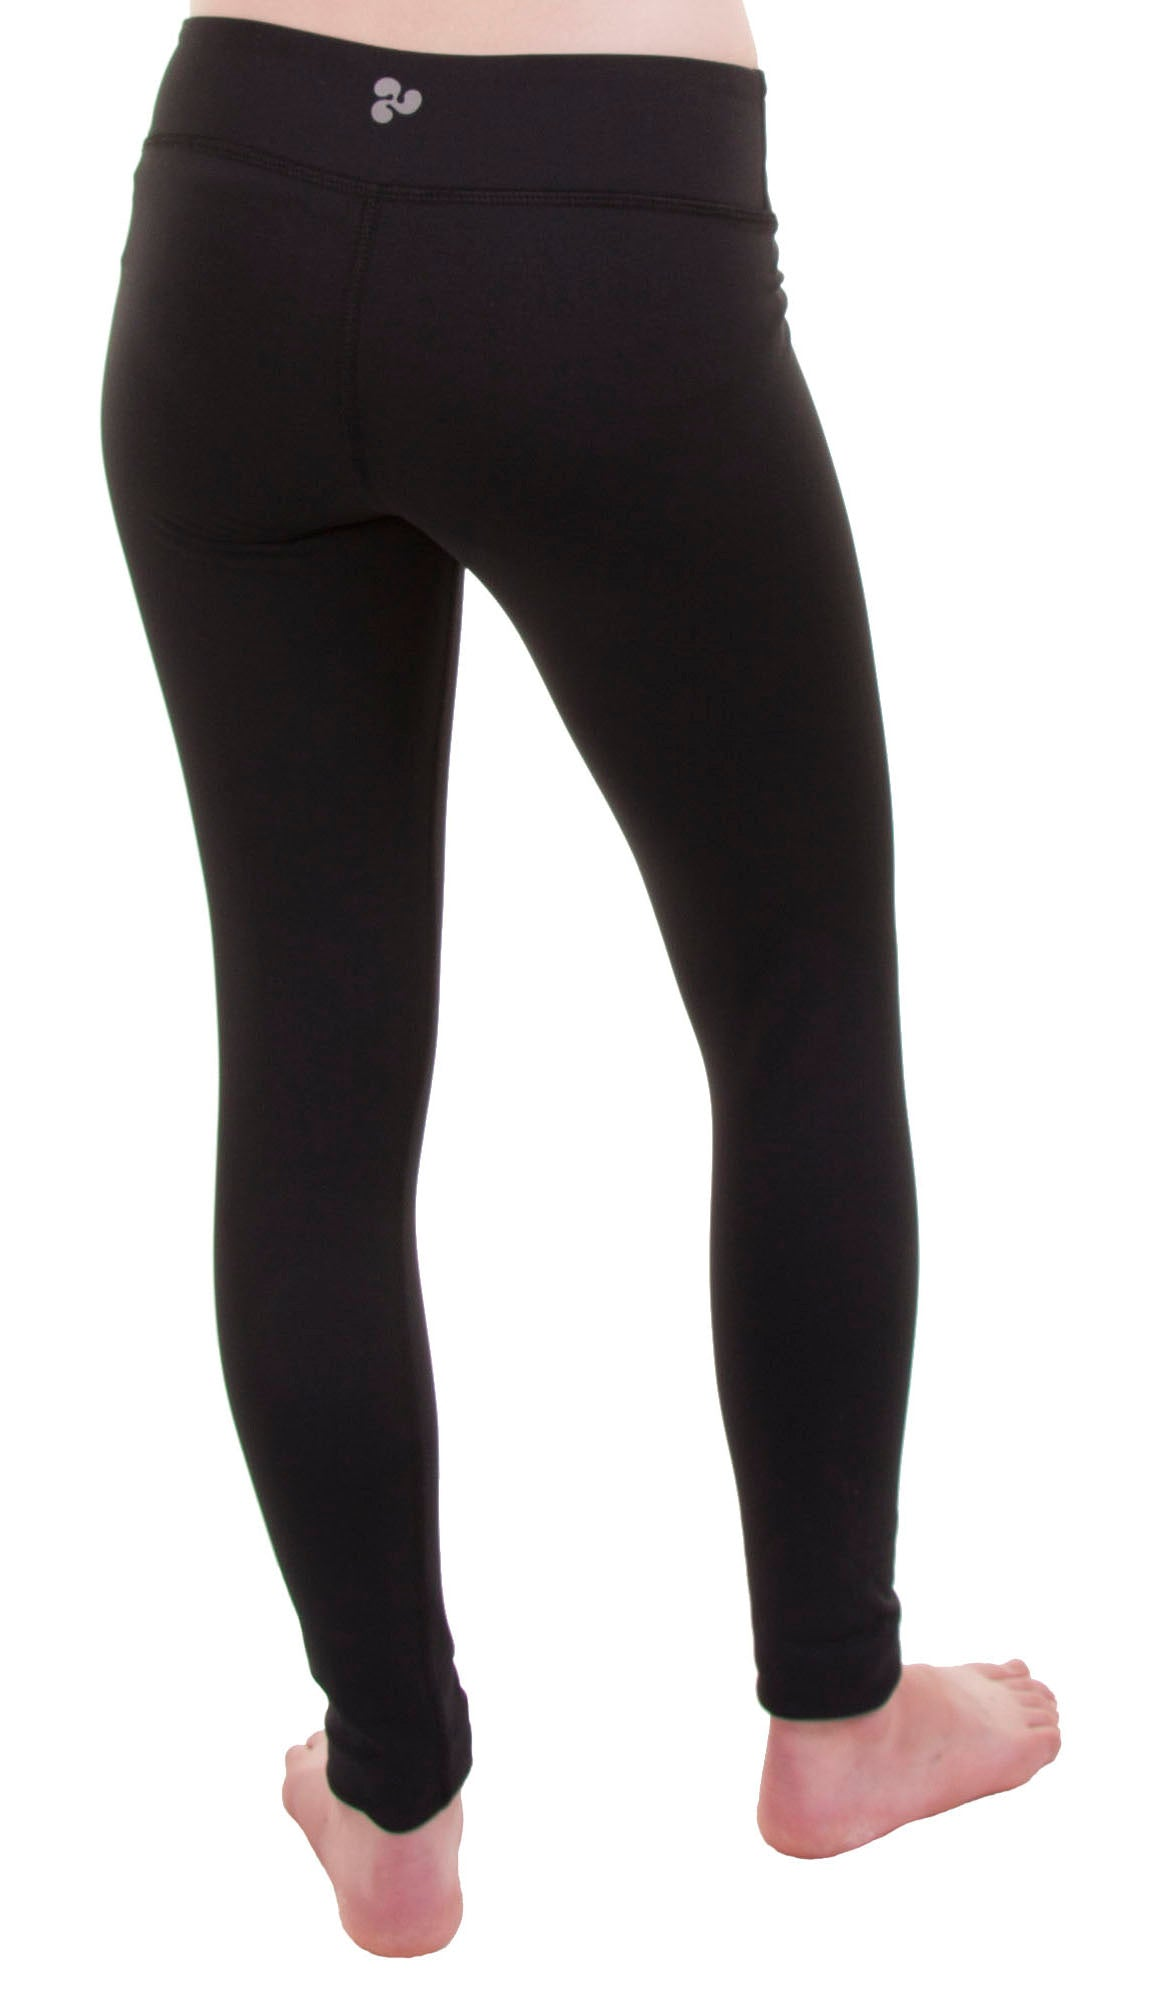 Triple Flip Accelerate Legging - Inventory